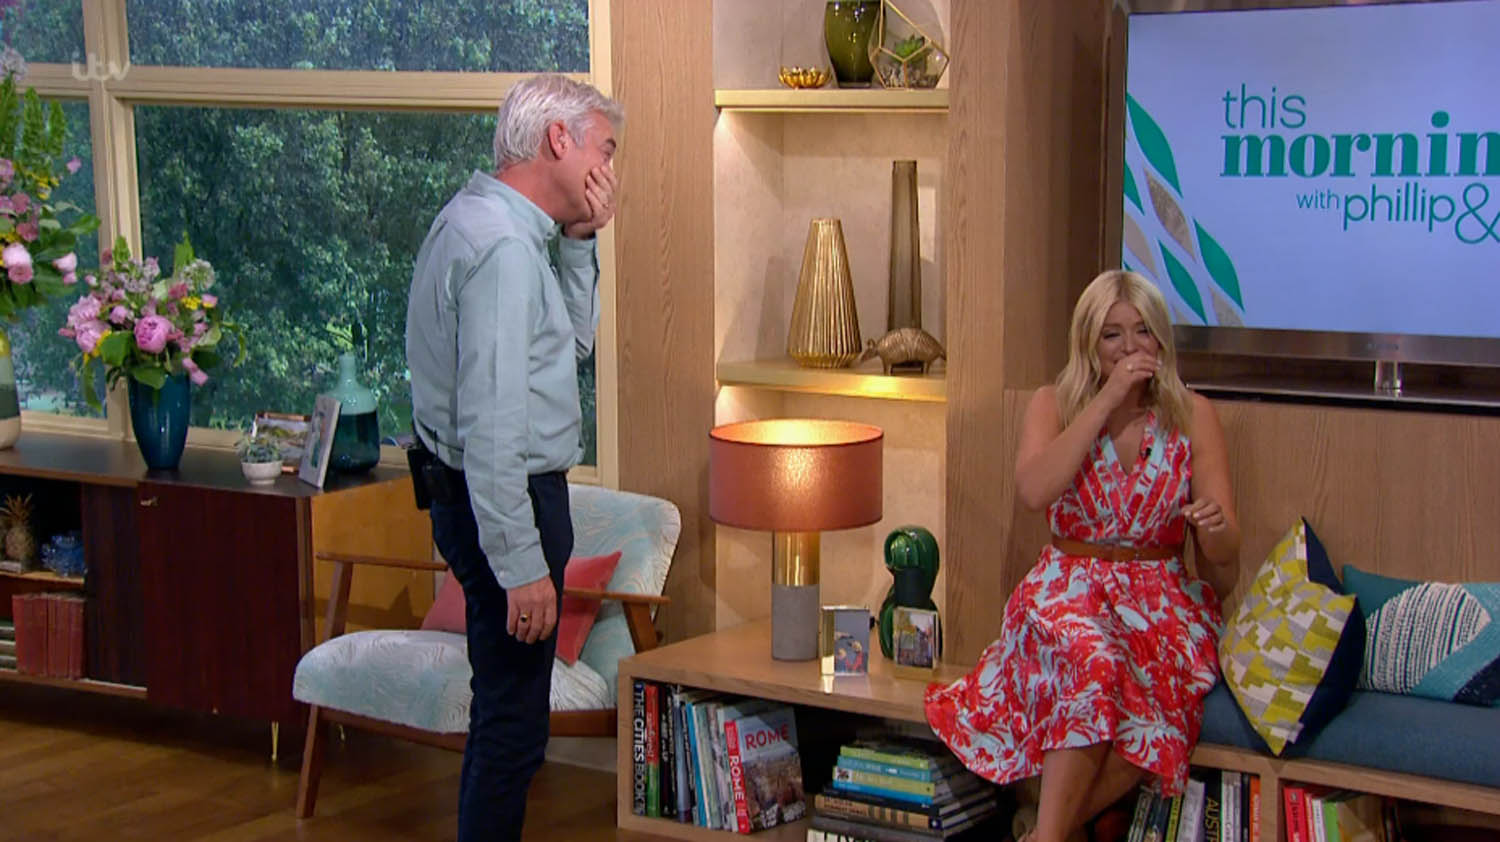 """****Ruckas Videograbs**** (01322) 861777 *IMPORTANT* Please credit ITV for this picture. 08/06/16 This Morning - ITV1 Grabs from this morning's show which saw presenter's Holly Willoughby and Phillip Schofield having a huge giggling fit - so much so that they both were crying tears of laughter and couldn't compose themselves to read the links off of the autocue. It appeared they got the giggles after Phiilip read out a link which said a woman """"developed a close bond"""" with an elephant who saved her life in the 2004 Tsunami. Neither could reain any composure and Holly ended up having to sit down as tears rolled down her eyes. The pair have had giggling fits in the past but Phillip said """"This is the worst it's happened for ages. We haven't done this for a long time."""" Office (UK) : 01322 861777 Mobile (UK) : 07742 164 106 **IMPORTANT - PLEASE READ** The video grabs supplied by Ruckas Pictures always remain the copyright of the programme makers, we provide a service to purely capture and supply the images to the client, securing the copyright of the images will always remain the responsibility of the publisher at all times. Standard terms, conditions & minimum fees apply to our videograbs unless varied by agreement prior to publication."""